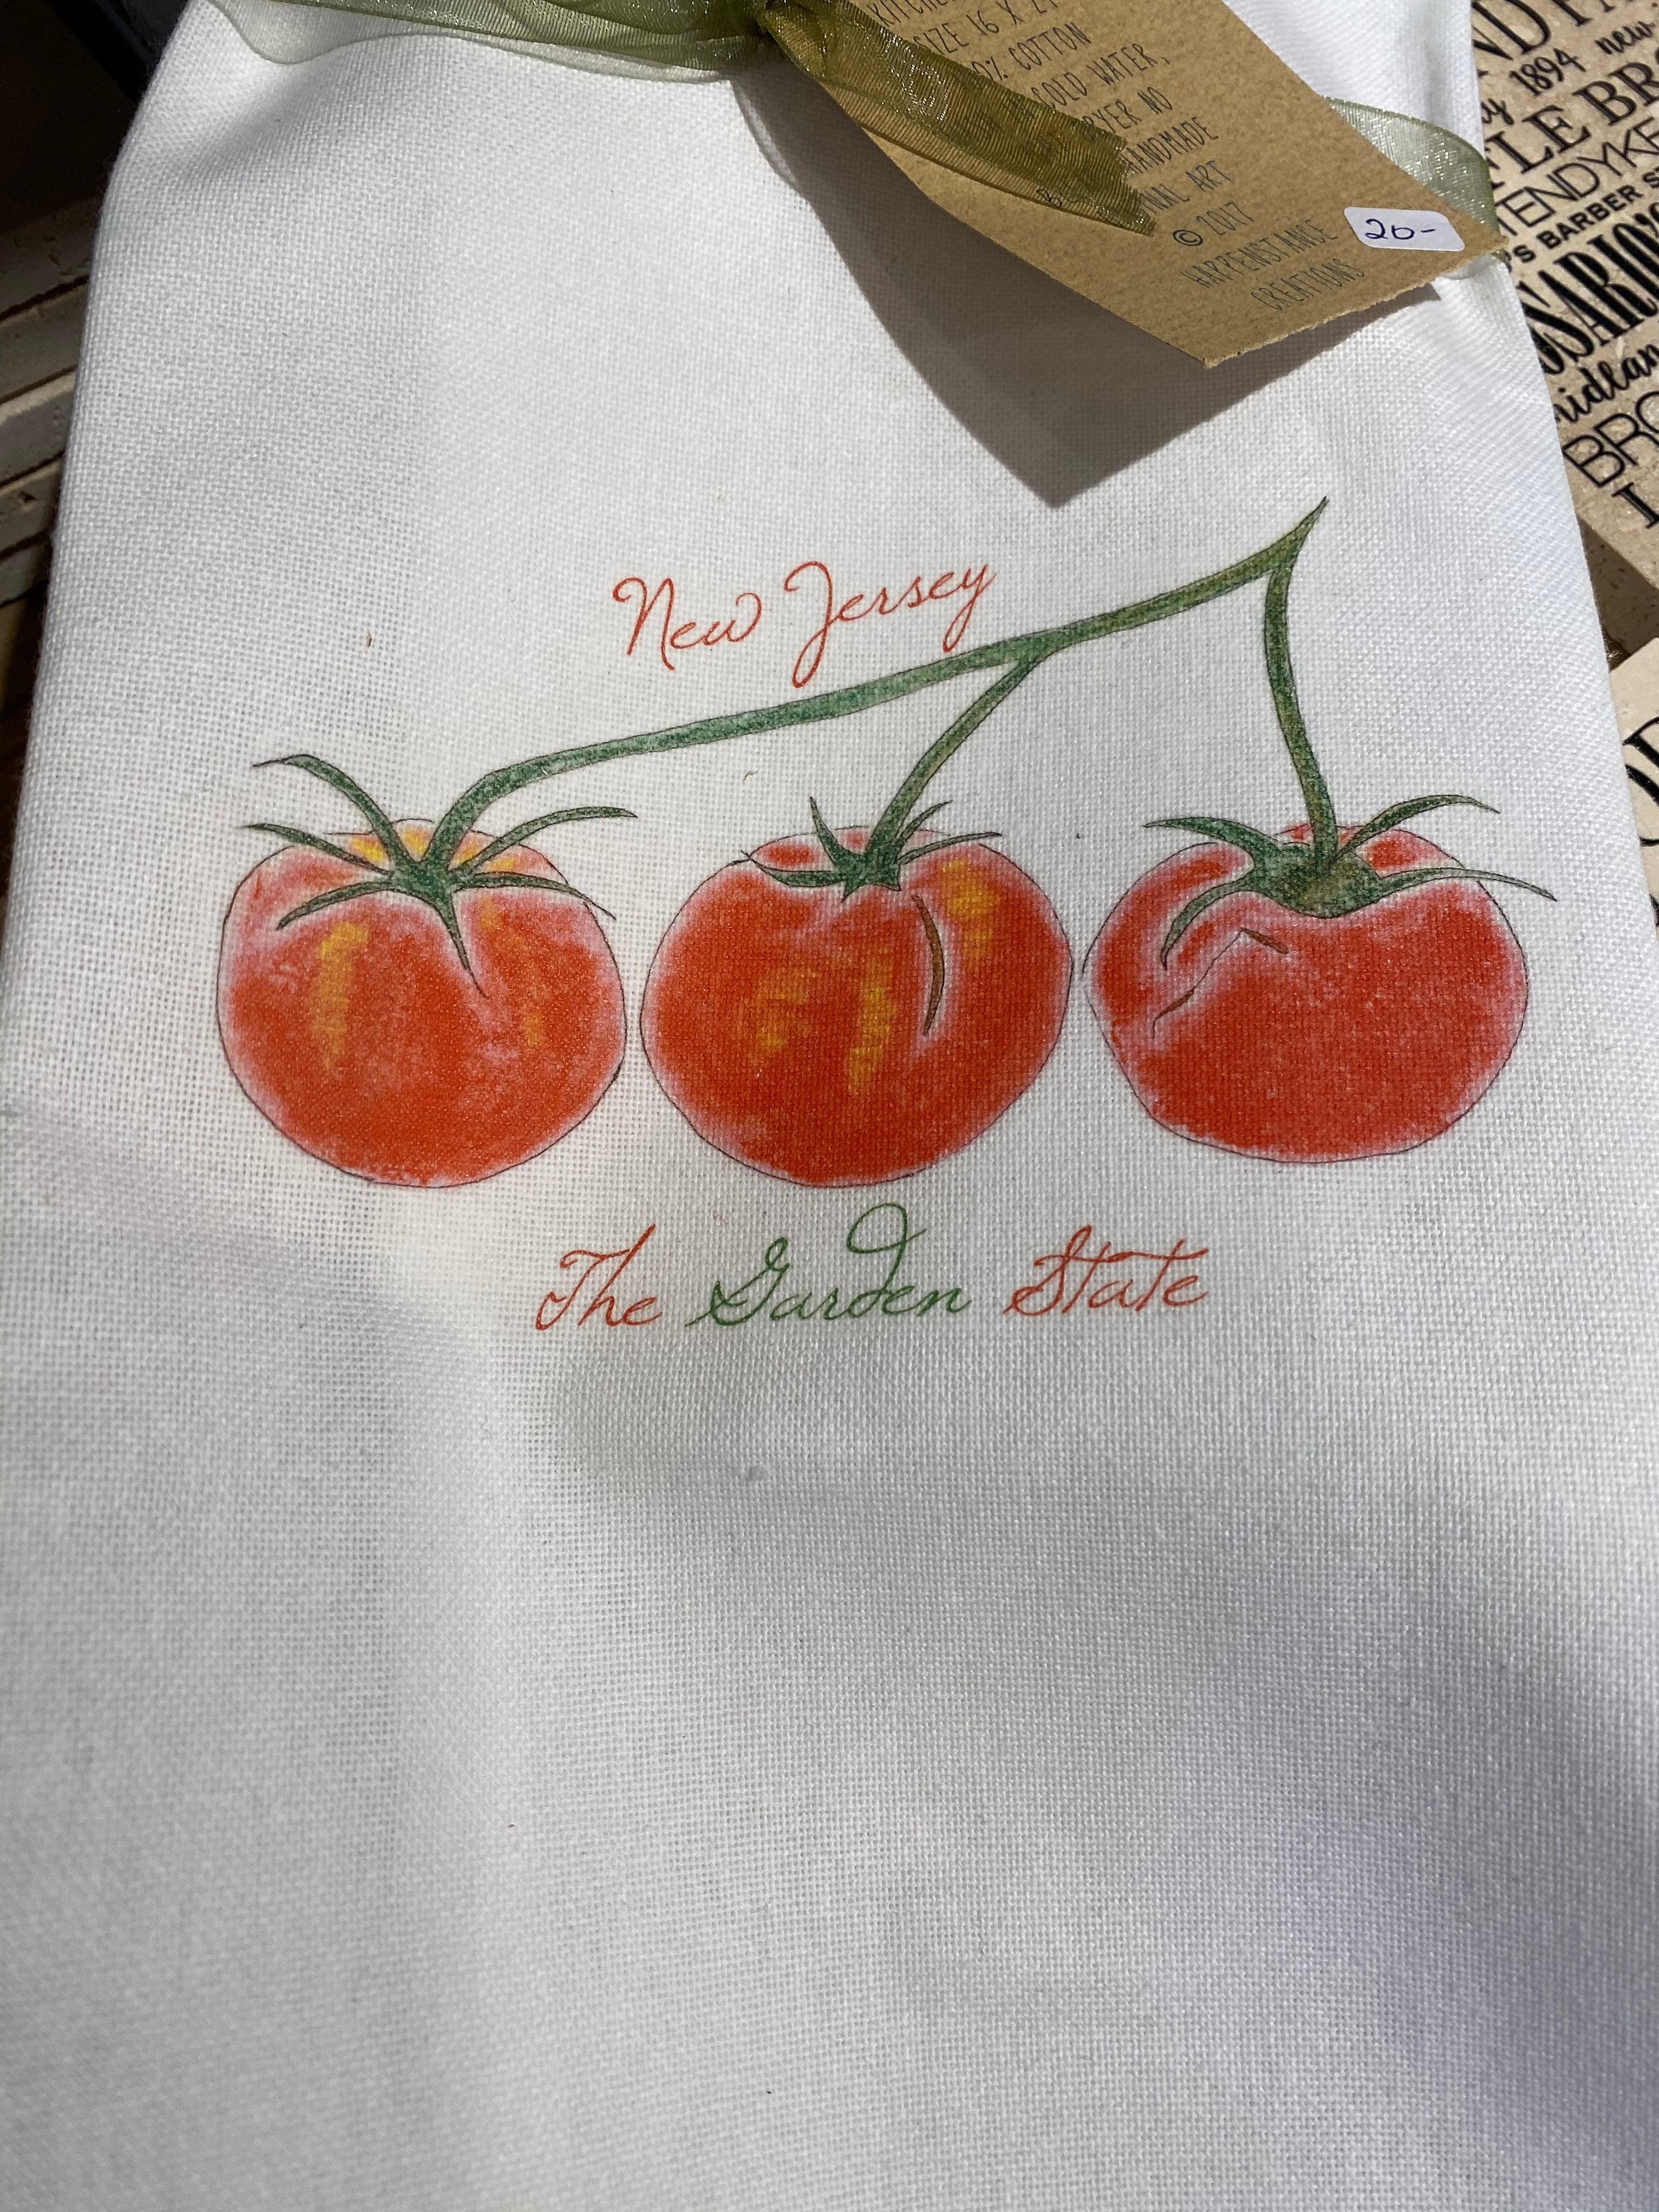 NJ The Garden State Dish Towel